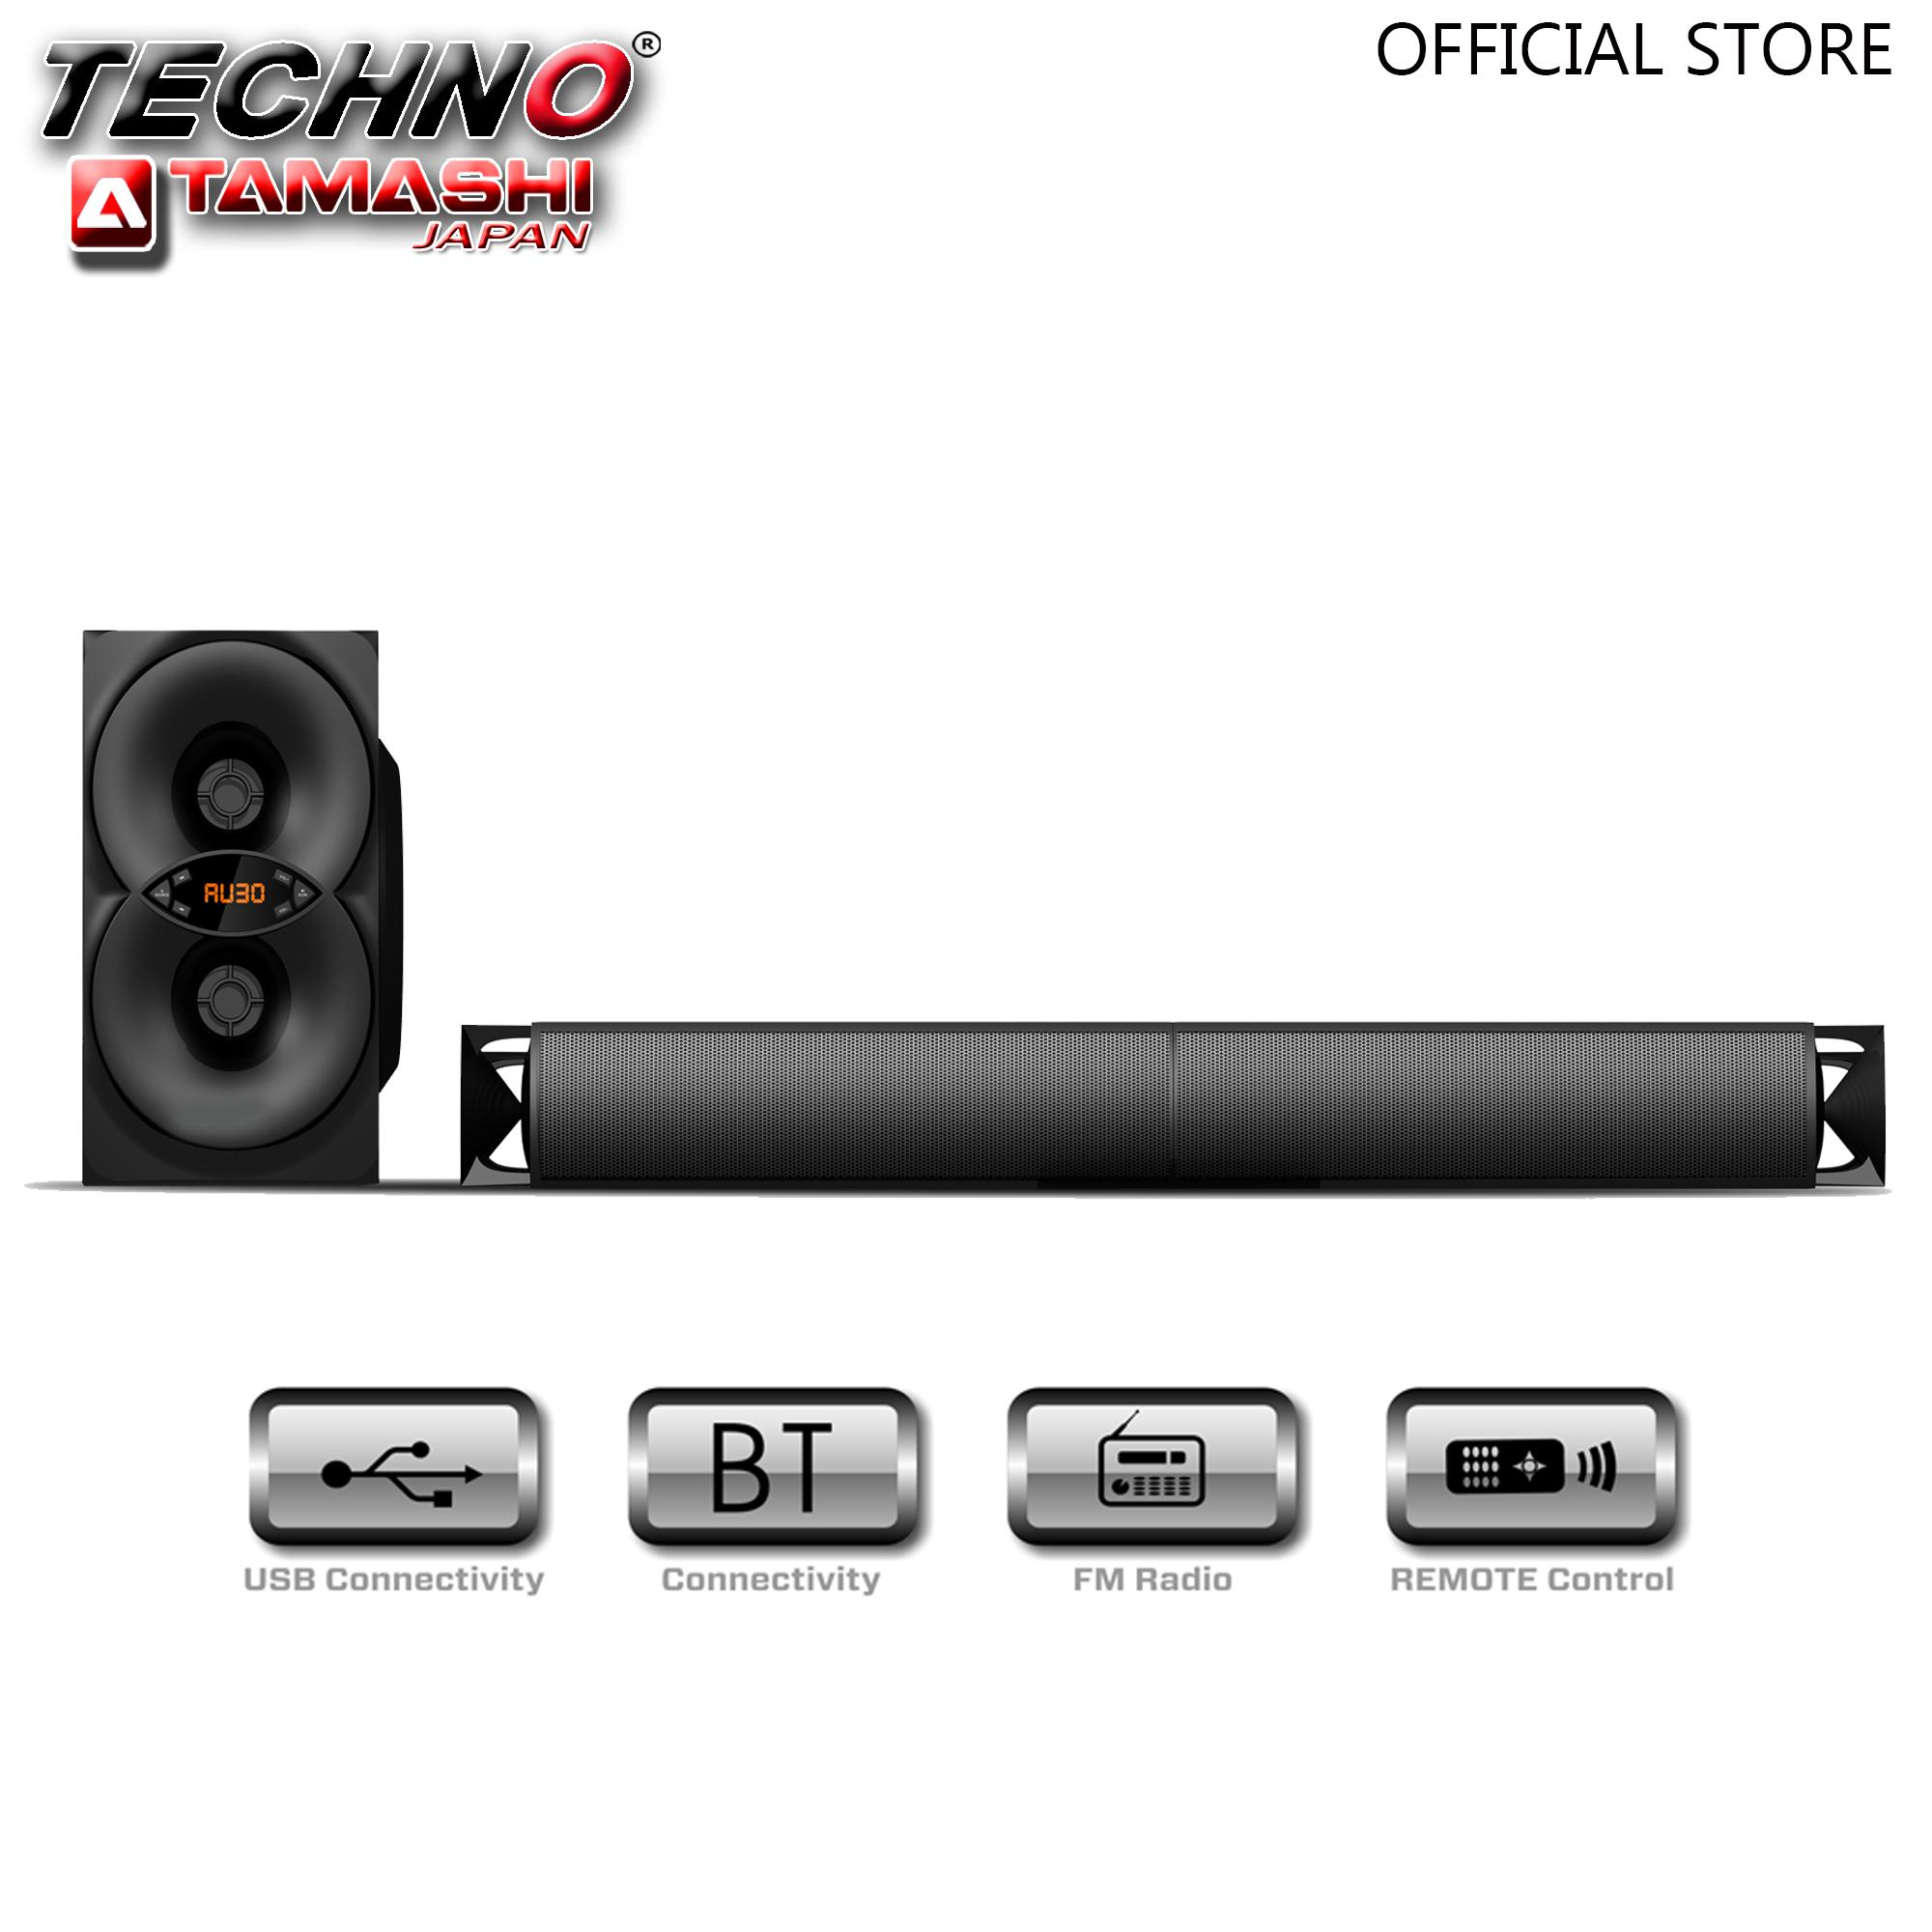 Techno Tamashi S7 Atlas 2 1 Channel Hybrid Soundbar